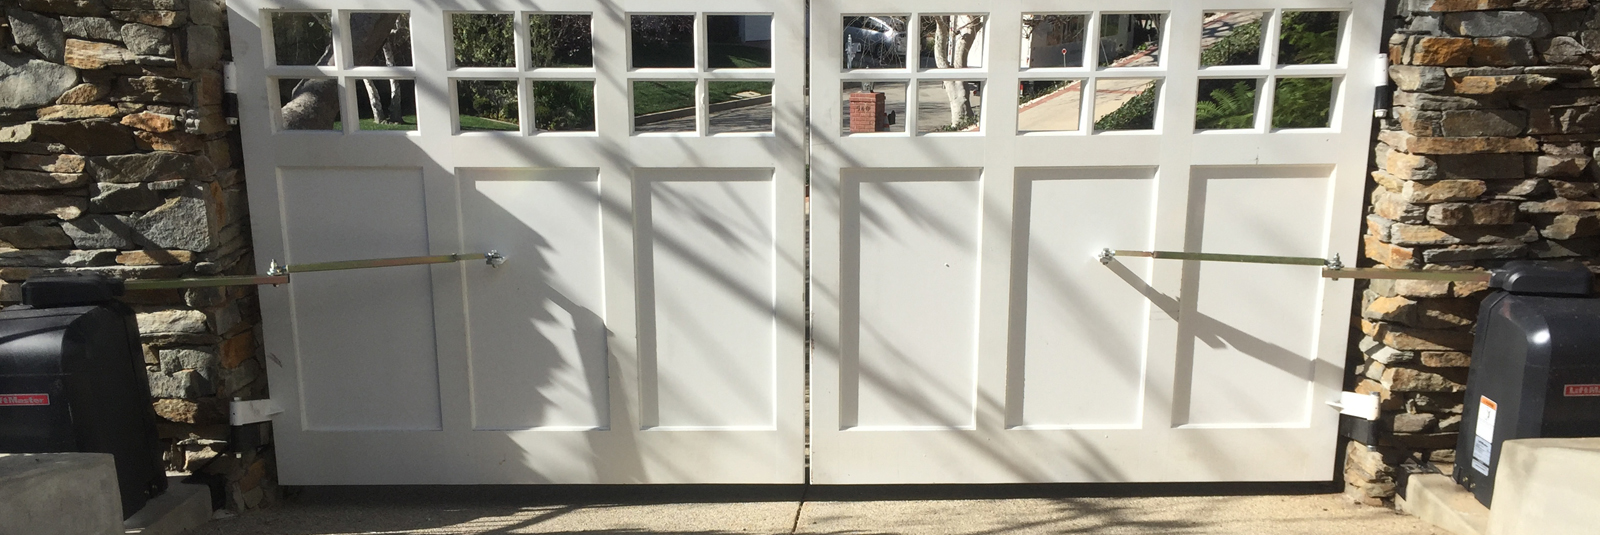 Driveway gates automatic electric los